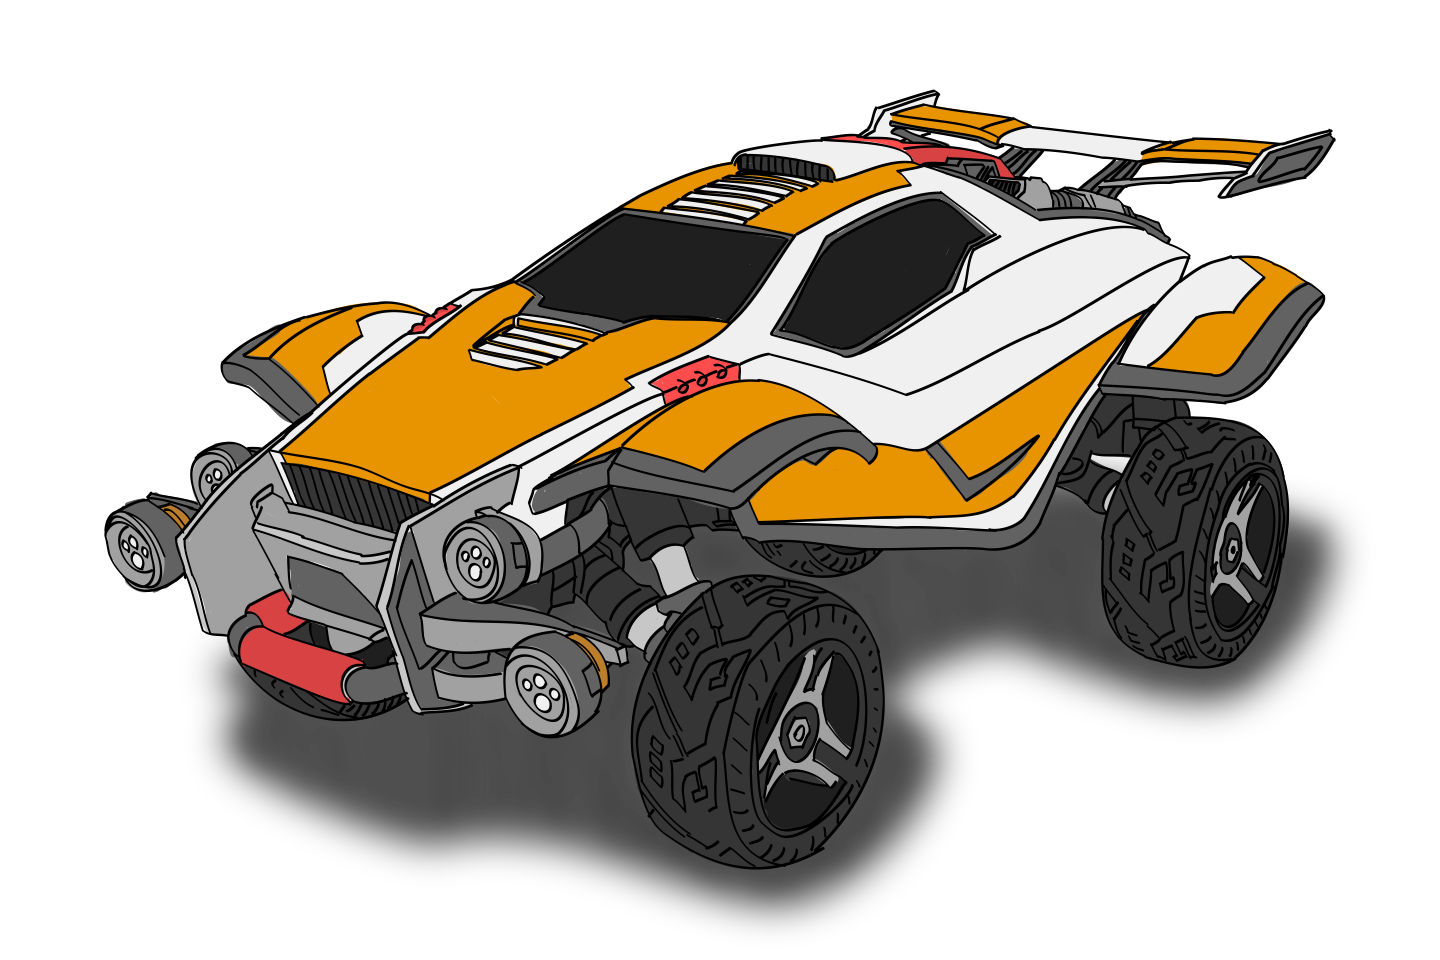 Rocket league octane png. I wanted to try